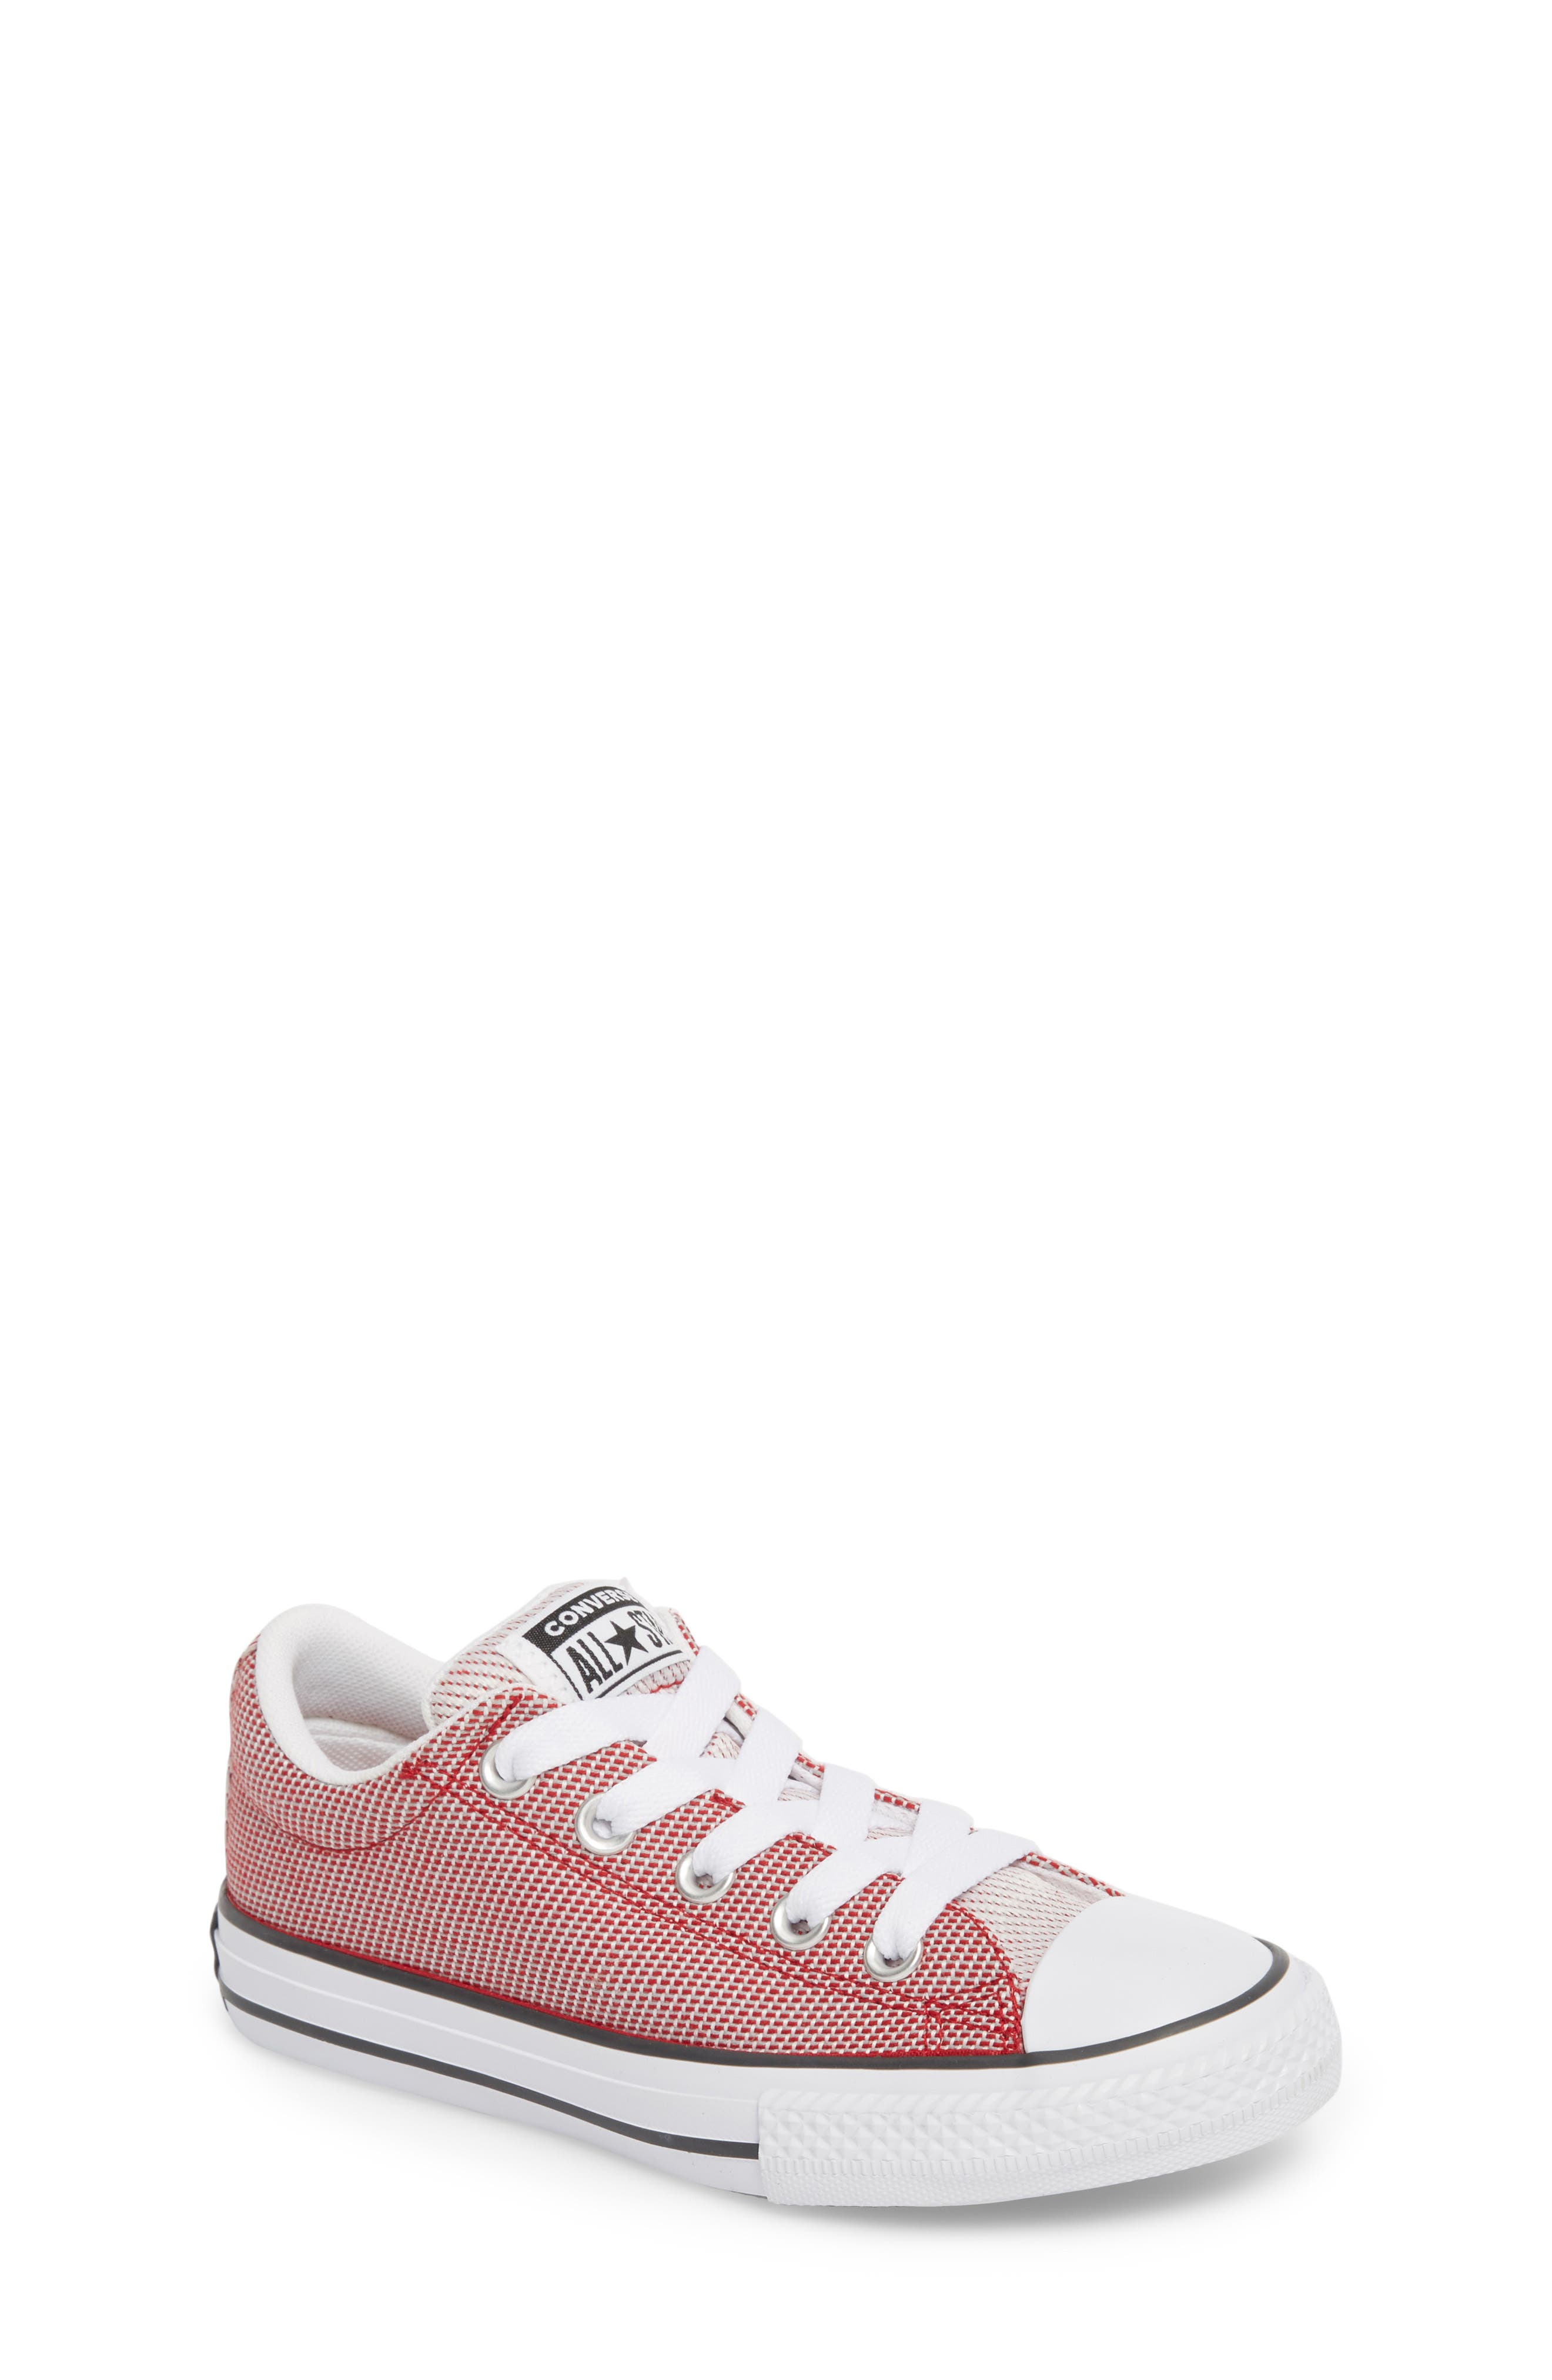 Chuck Taylor<sup>®</sup> All Star<sup>®</sup> Woven Street Sneaker,                             Main thumbnail 1, color,                             Gym Red